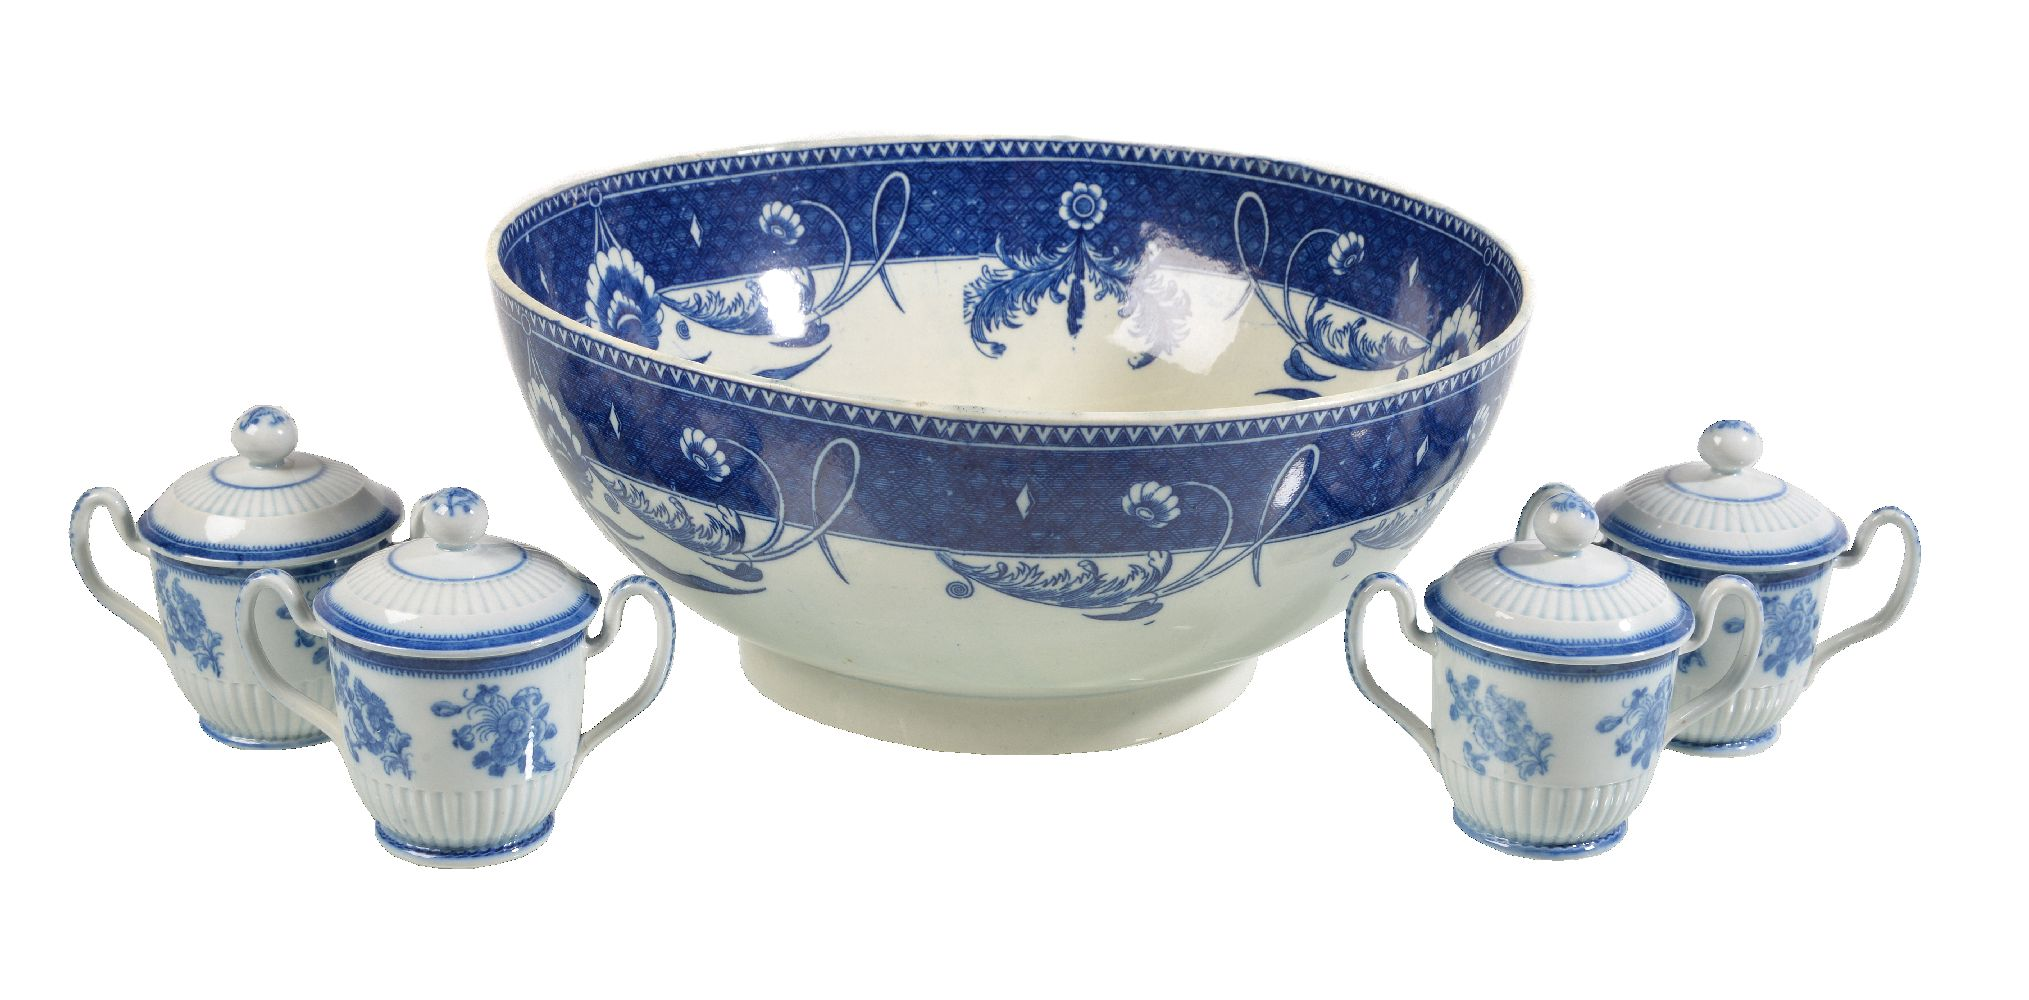 Lot 20 - A Staffordshire pearlware blue and white punch bowl, circa 1790, the well printed with a pagoda,